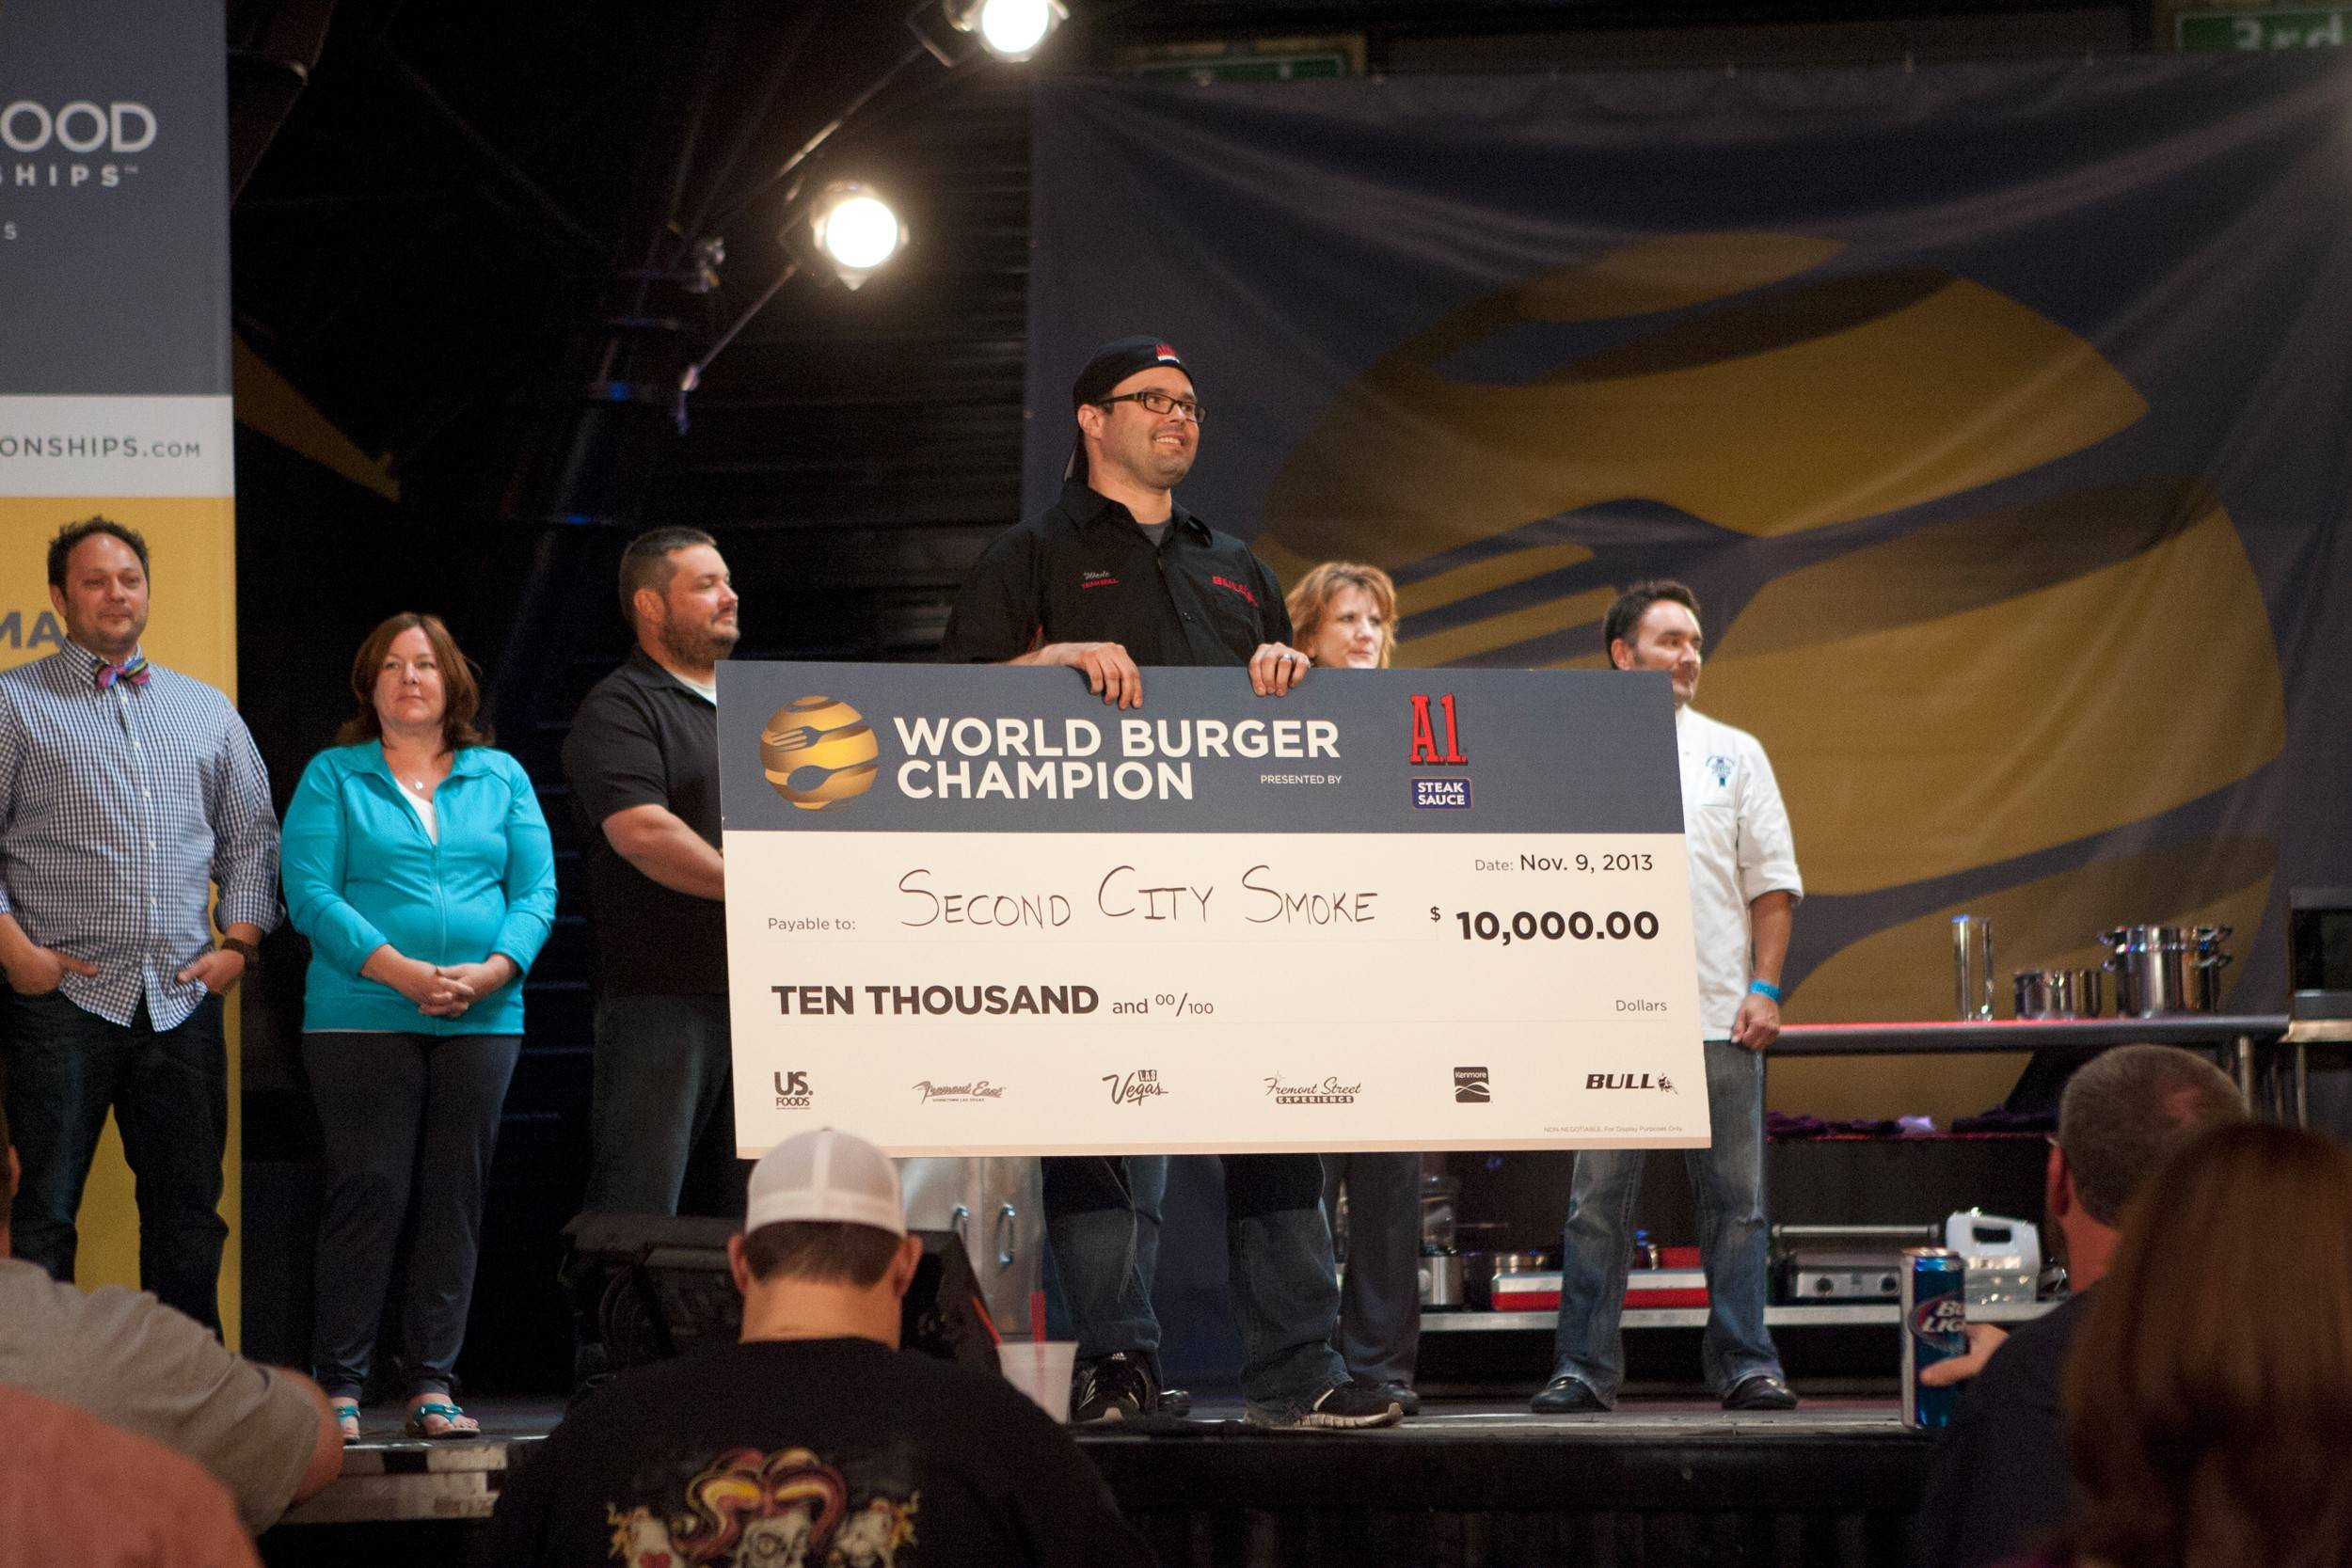 Wade Fortin of downstate Illinois won $10,000 in the burger category at the 2013 World Food Championships in Las Vegas.